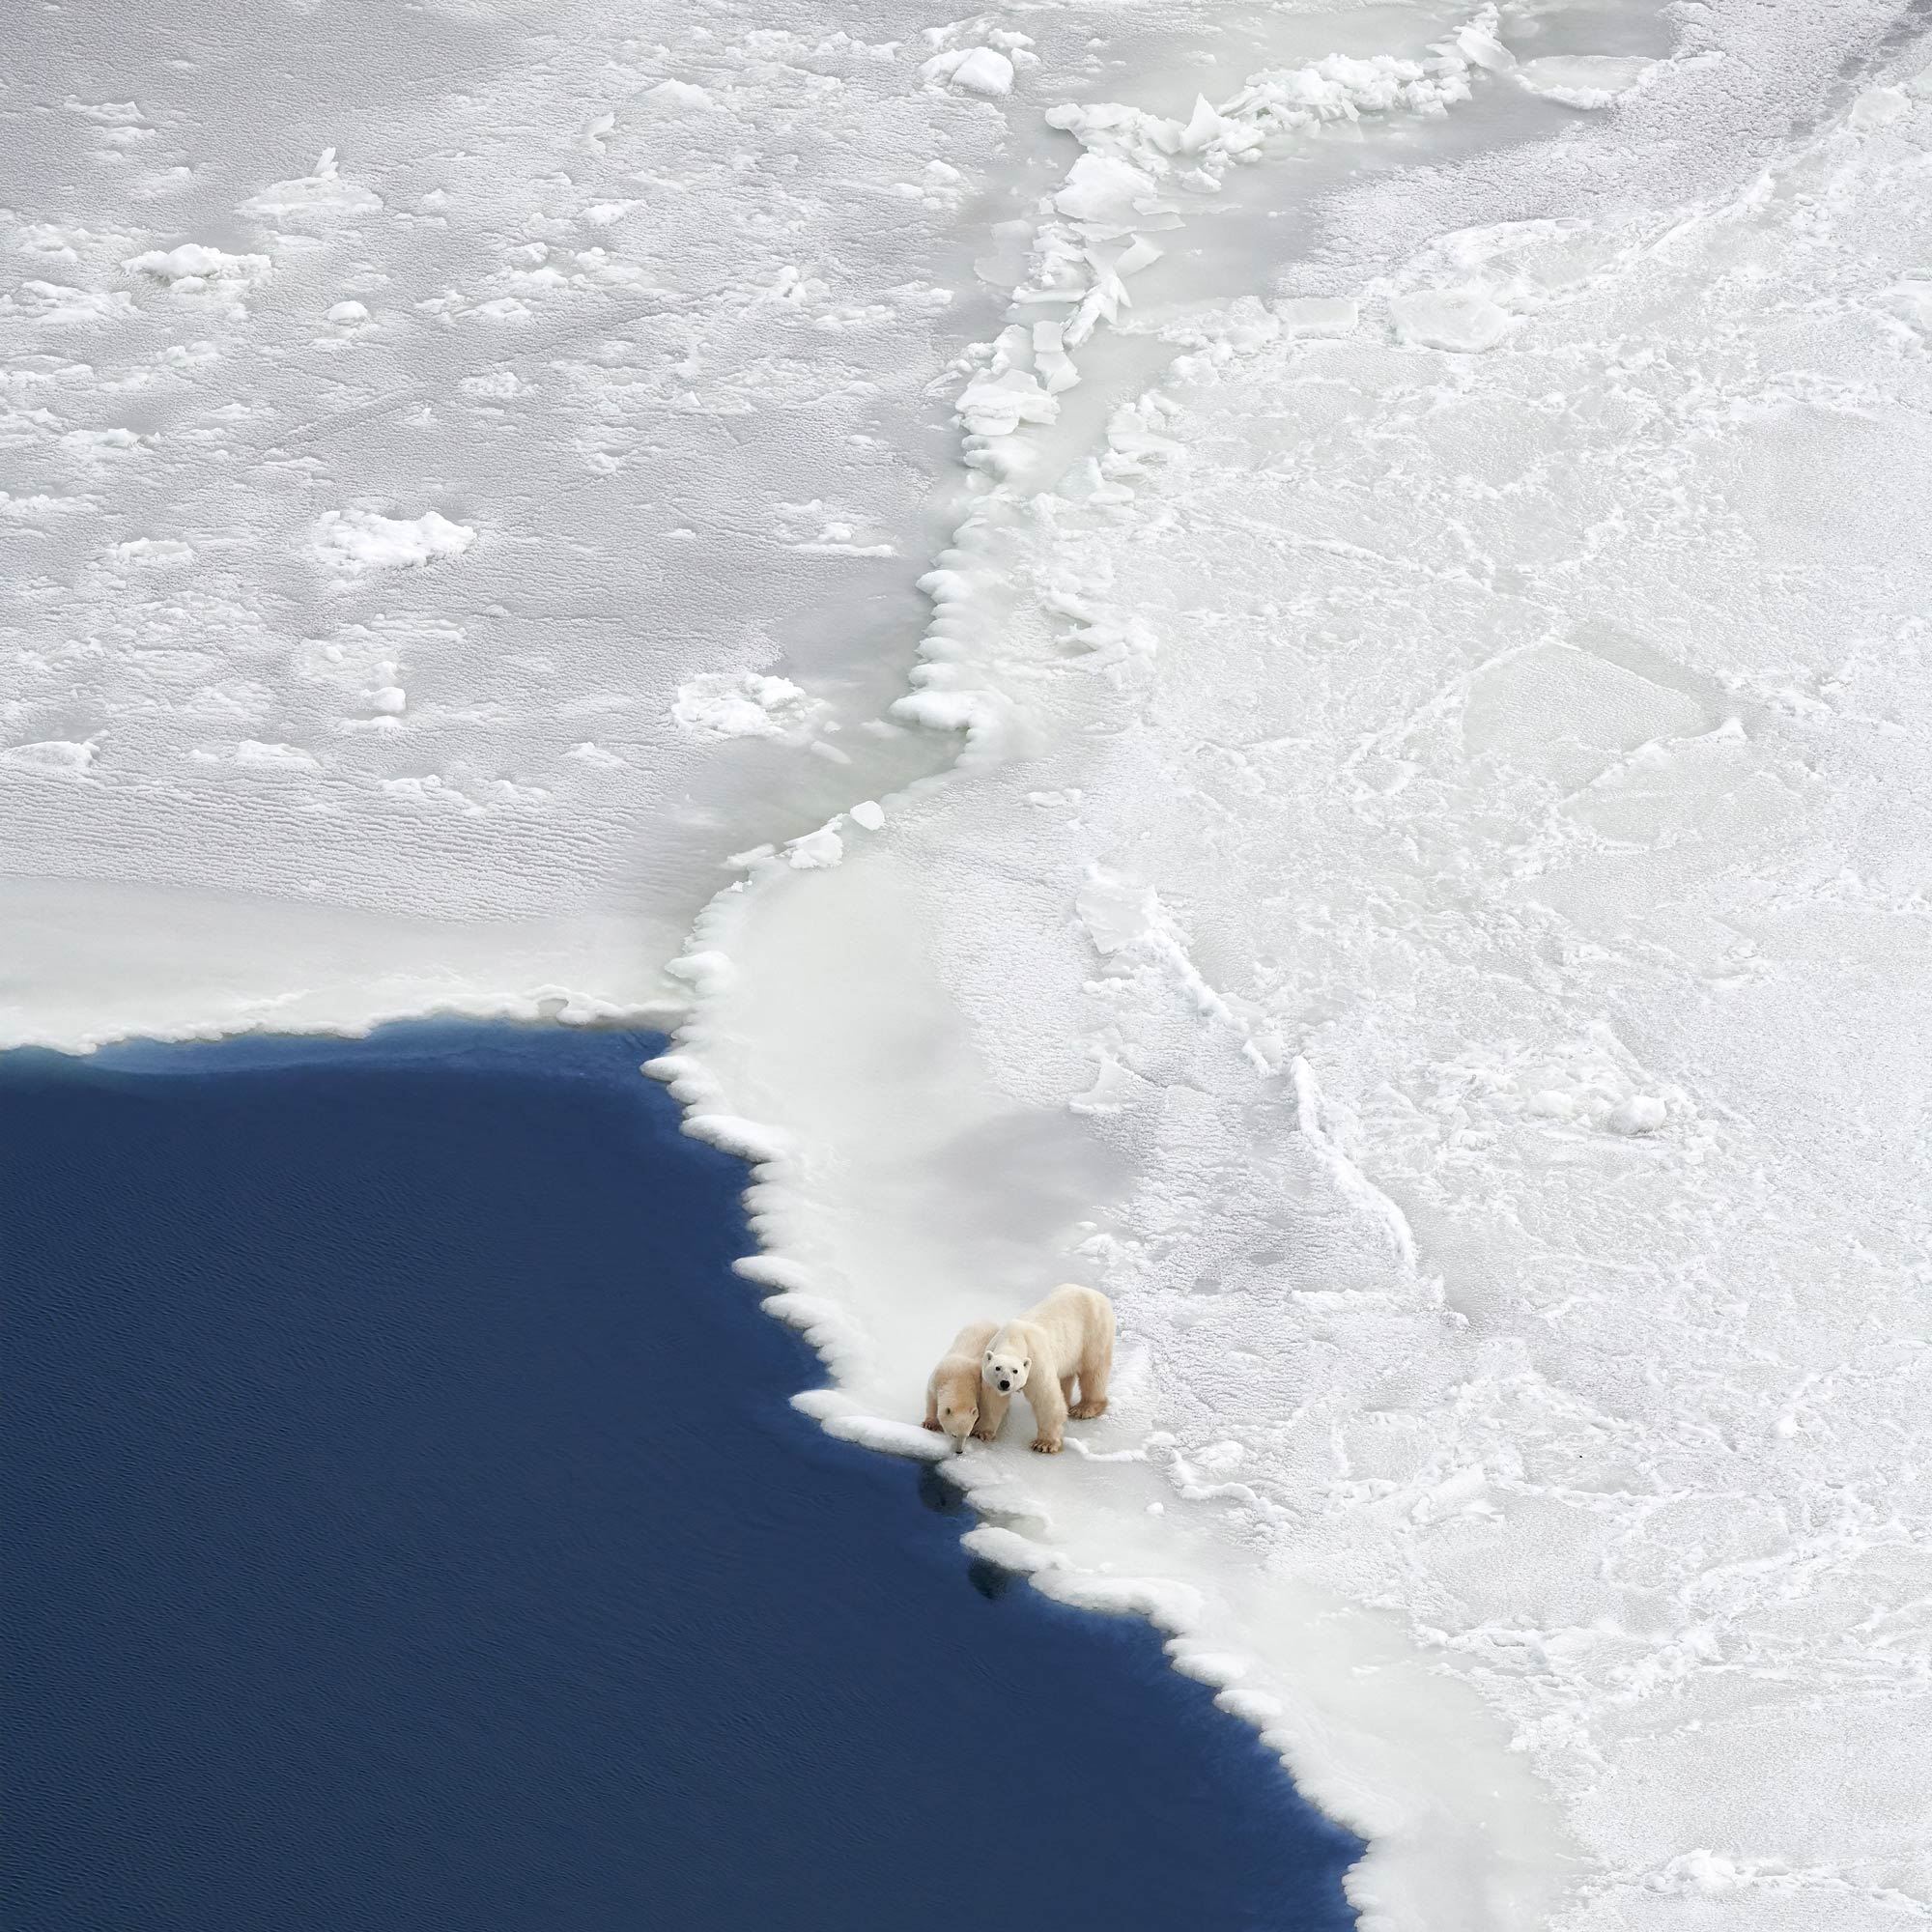 Polar bears on the edge of an ice shelf